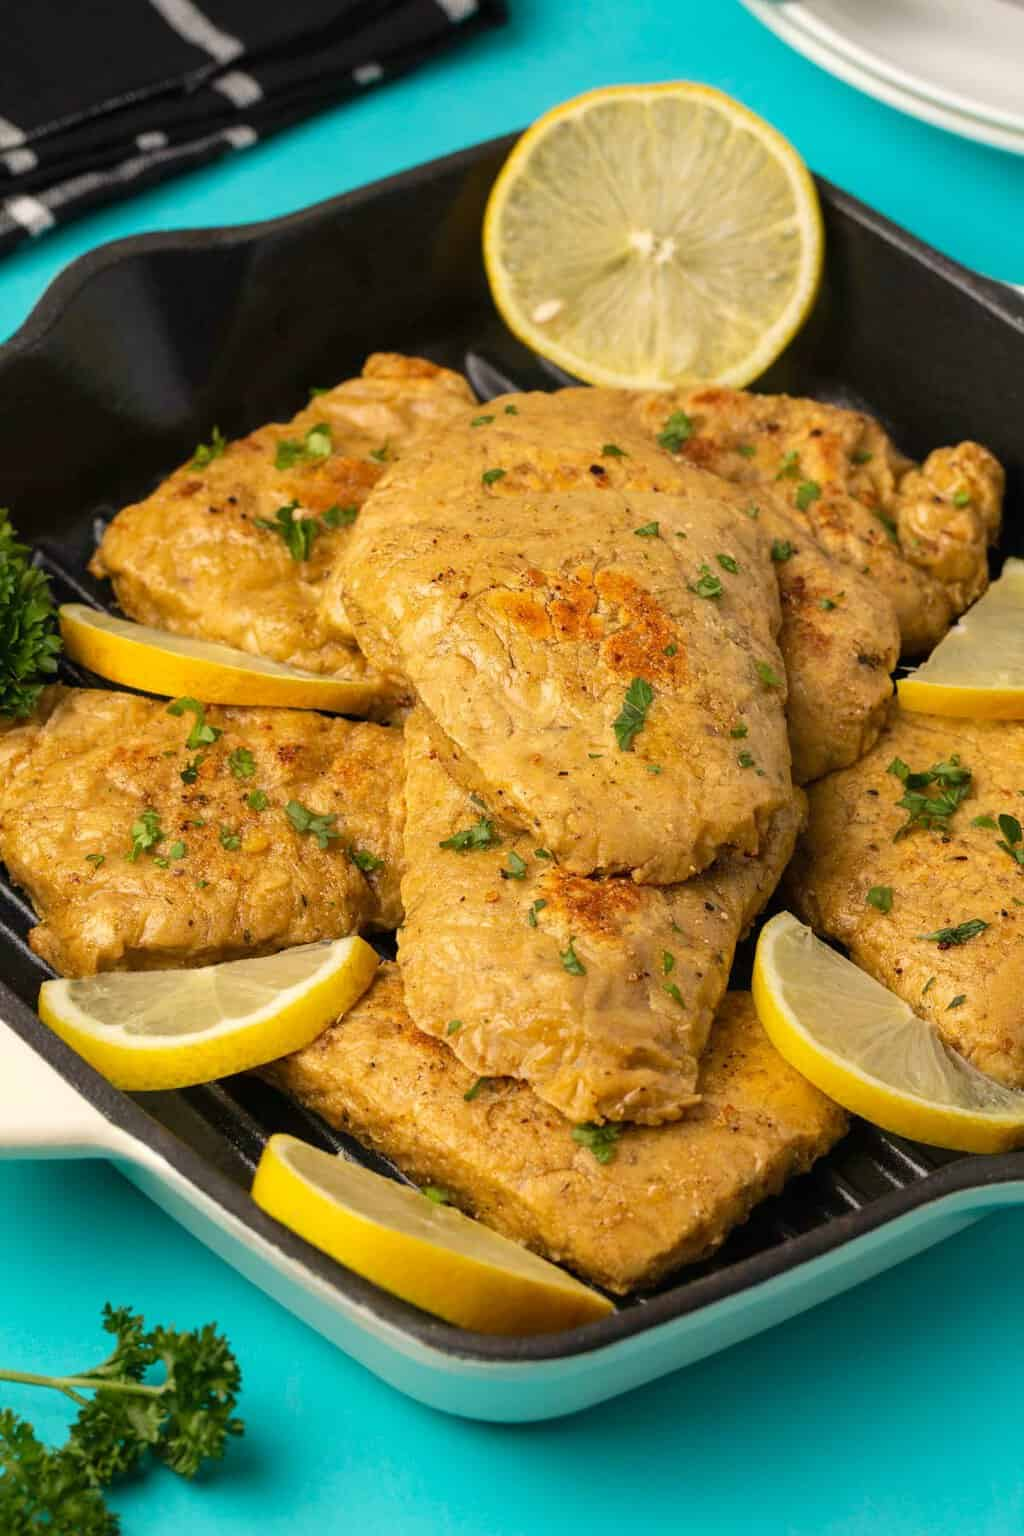 Vegan chicken fillets with chopped parsley and slices of lemon.